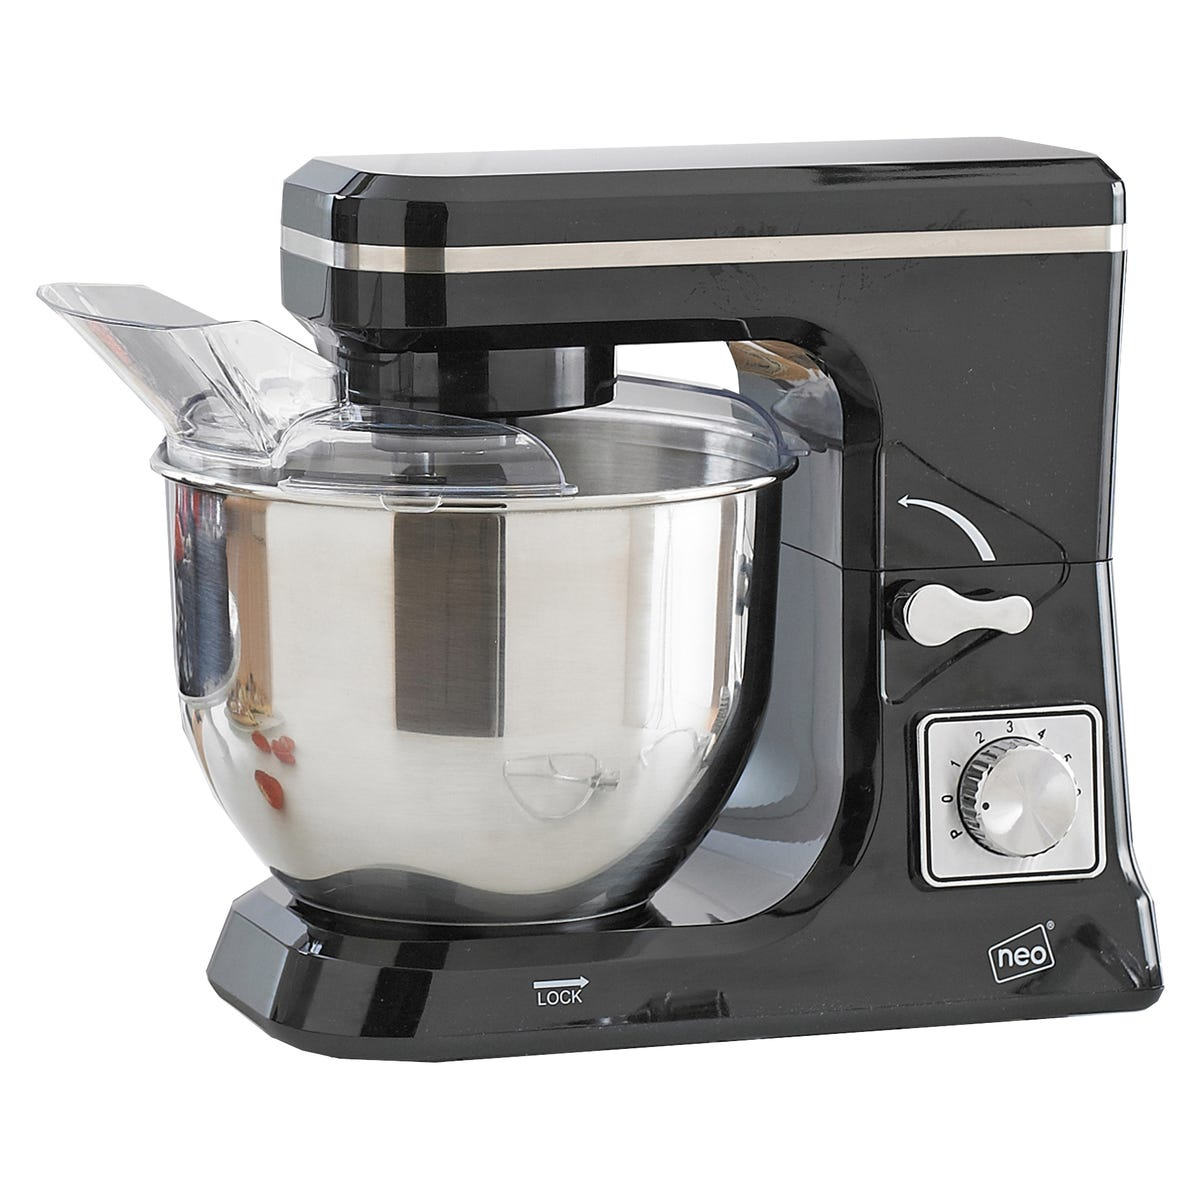 Neo 5L 800W 6 Speed Electric Stand Mixer - Black